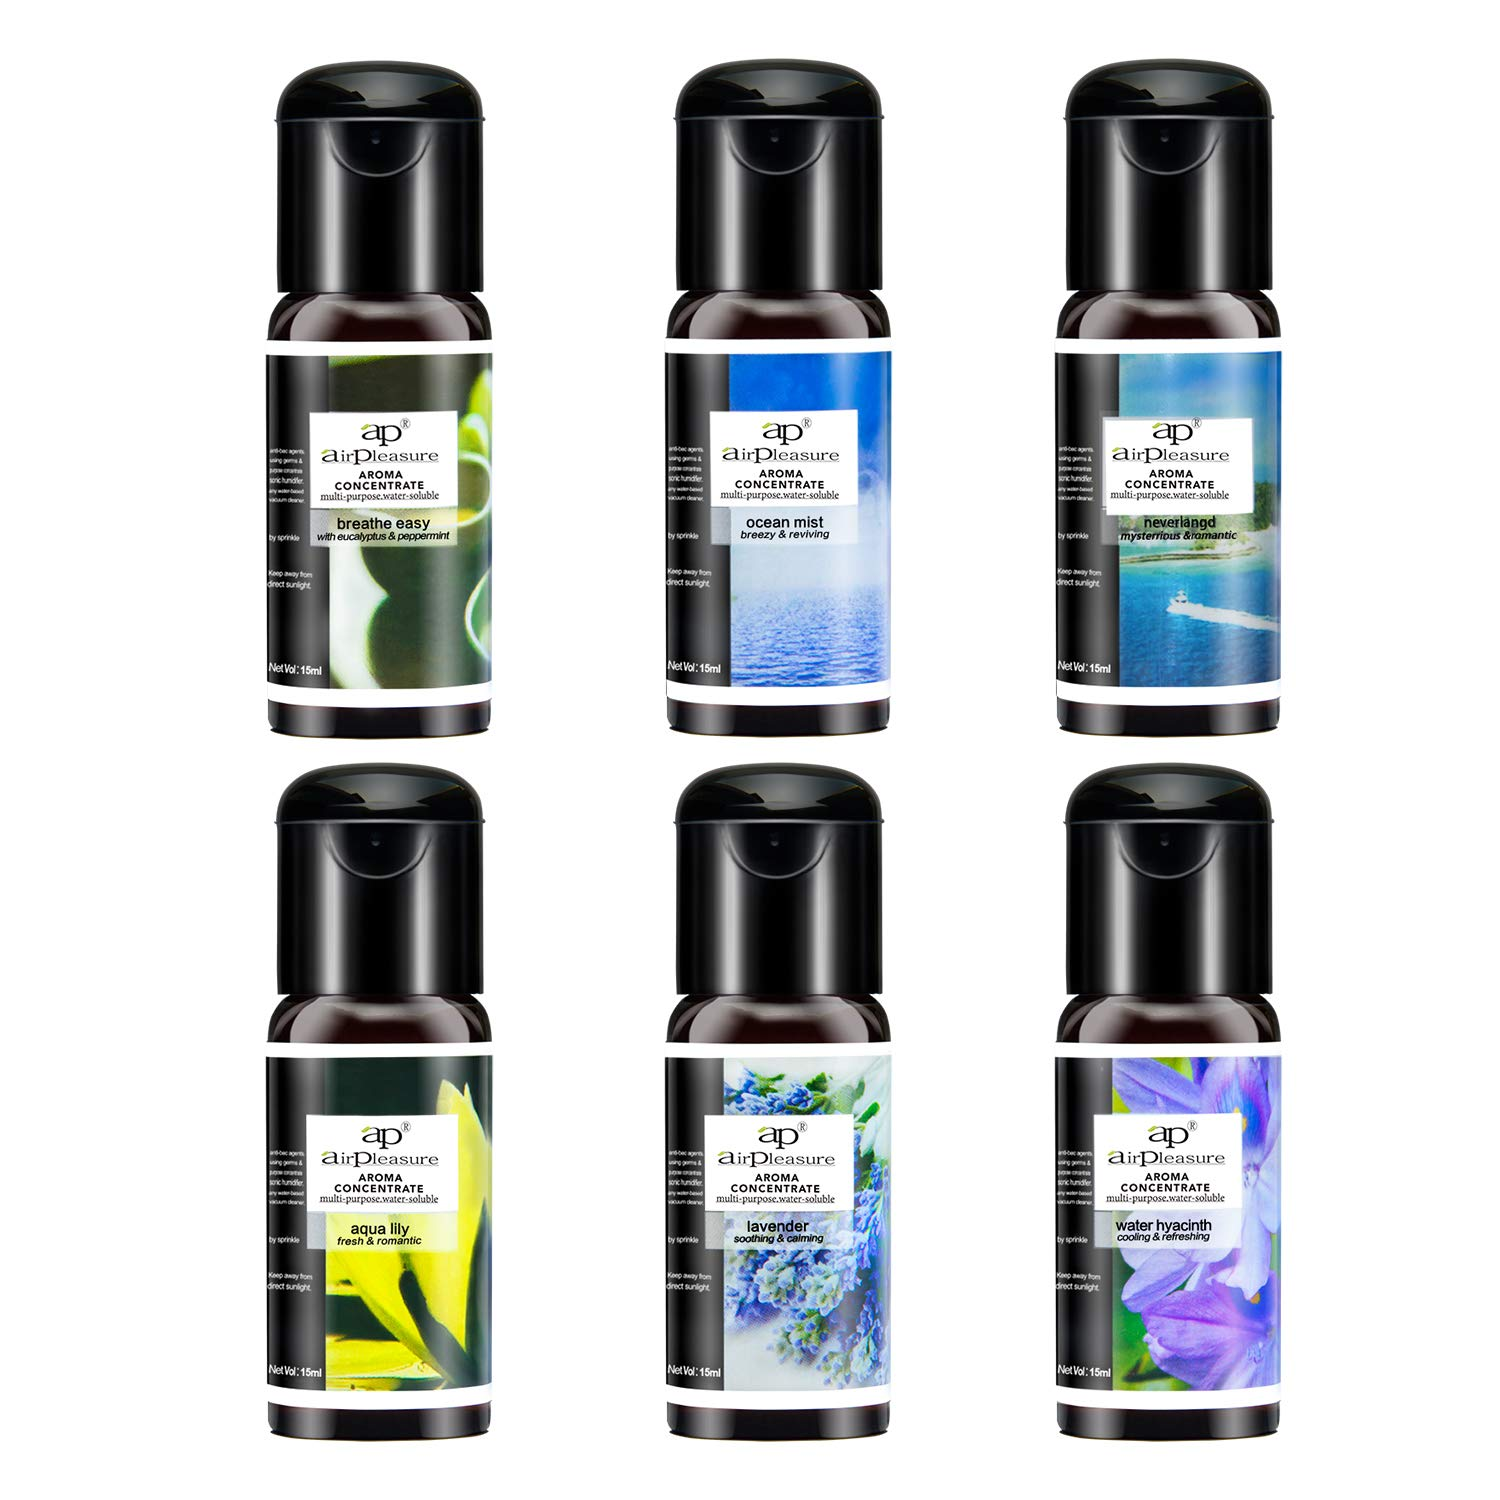 ap airpleasure Essential Oils Reborn Aroma Oils Multifunction Blends Gift Set Oils for Aromatherapy Diffuser, Humidifier, Fresher, Natural Aroma Oils, 6 Bottles, 15 ML